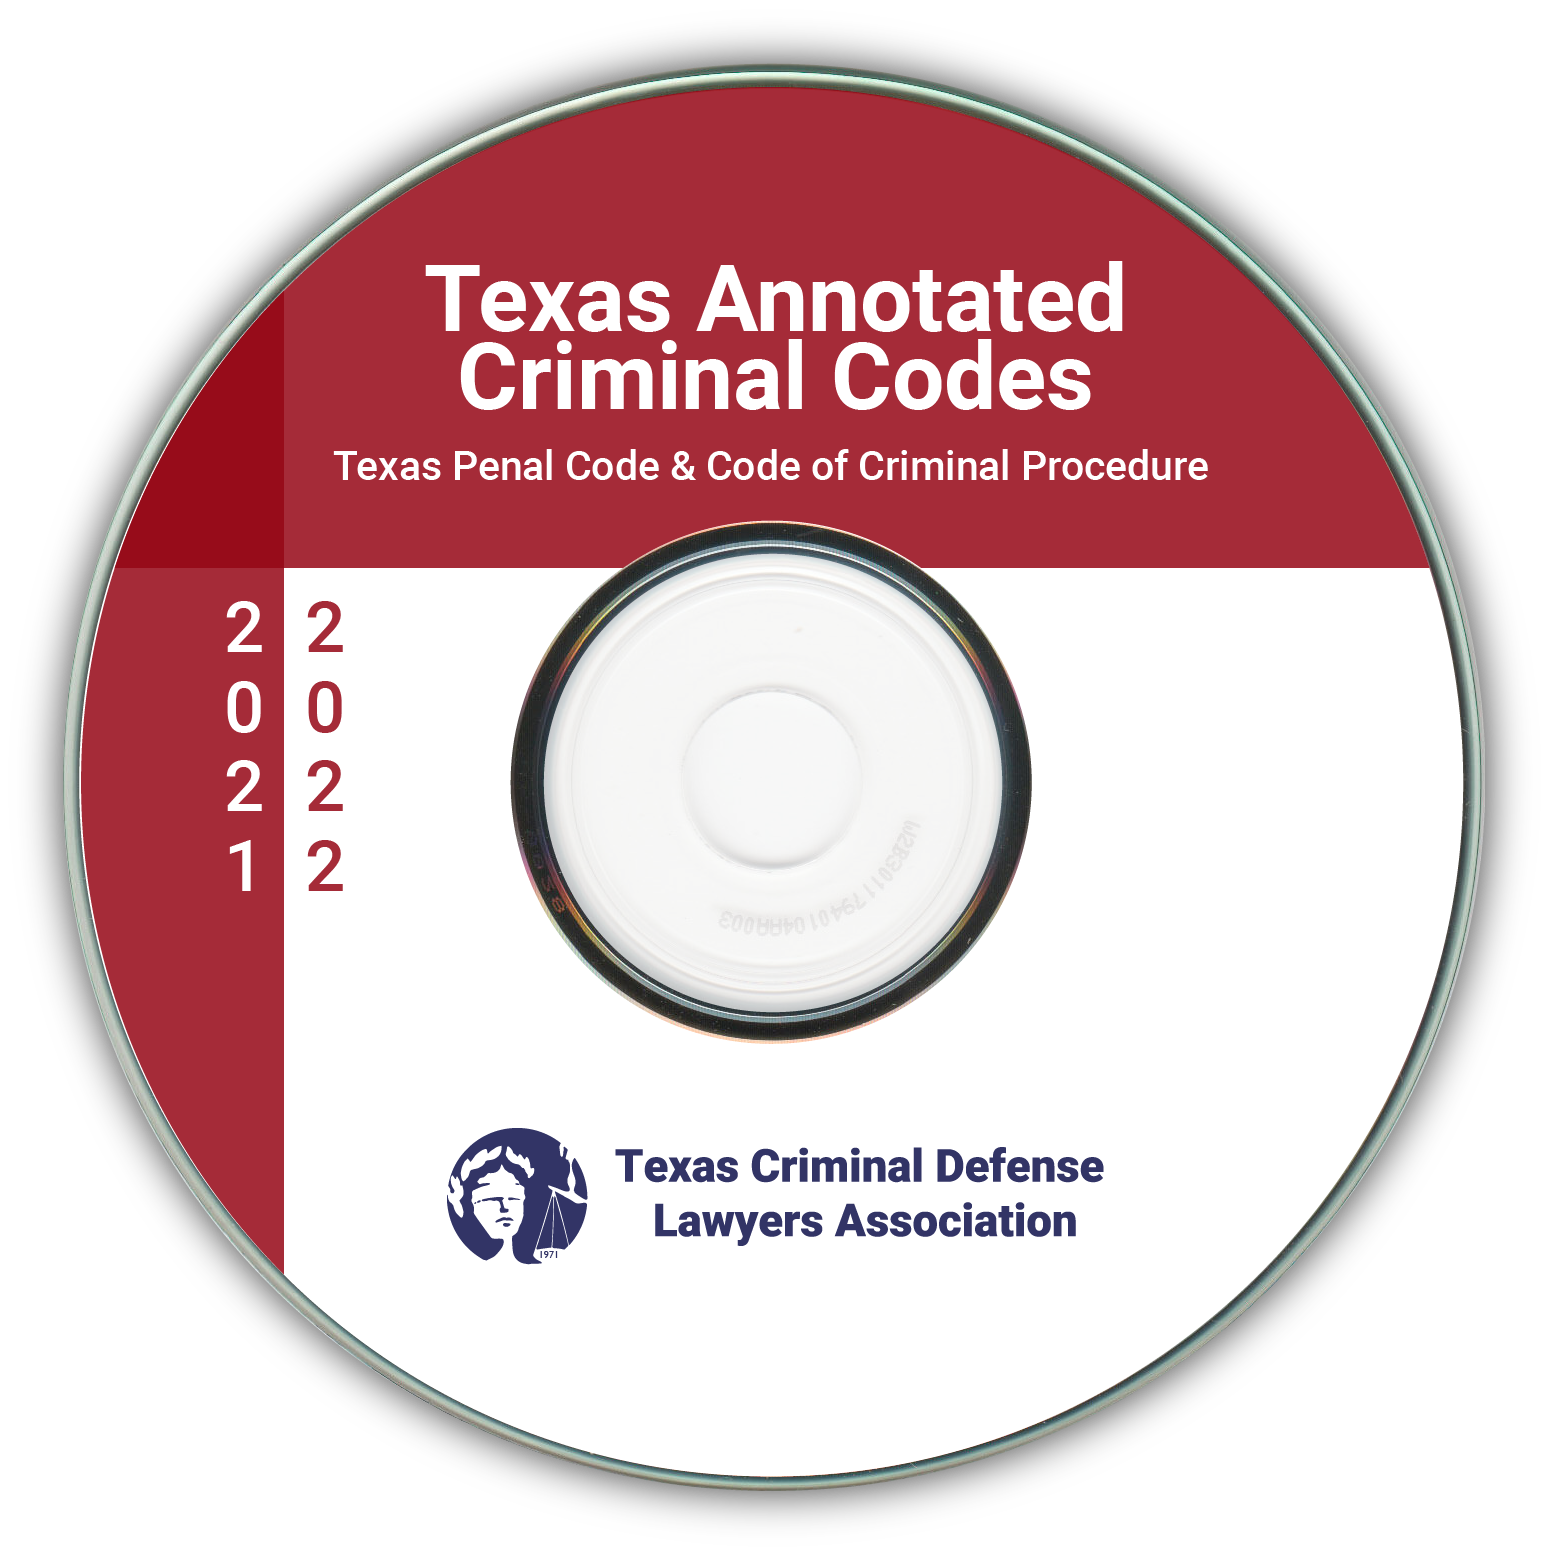 Texas Annotated Criminal Codebooks CD, 2021